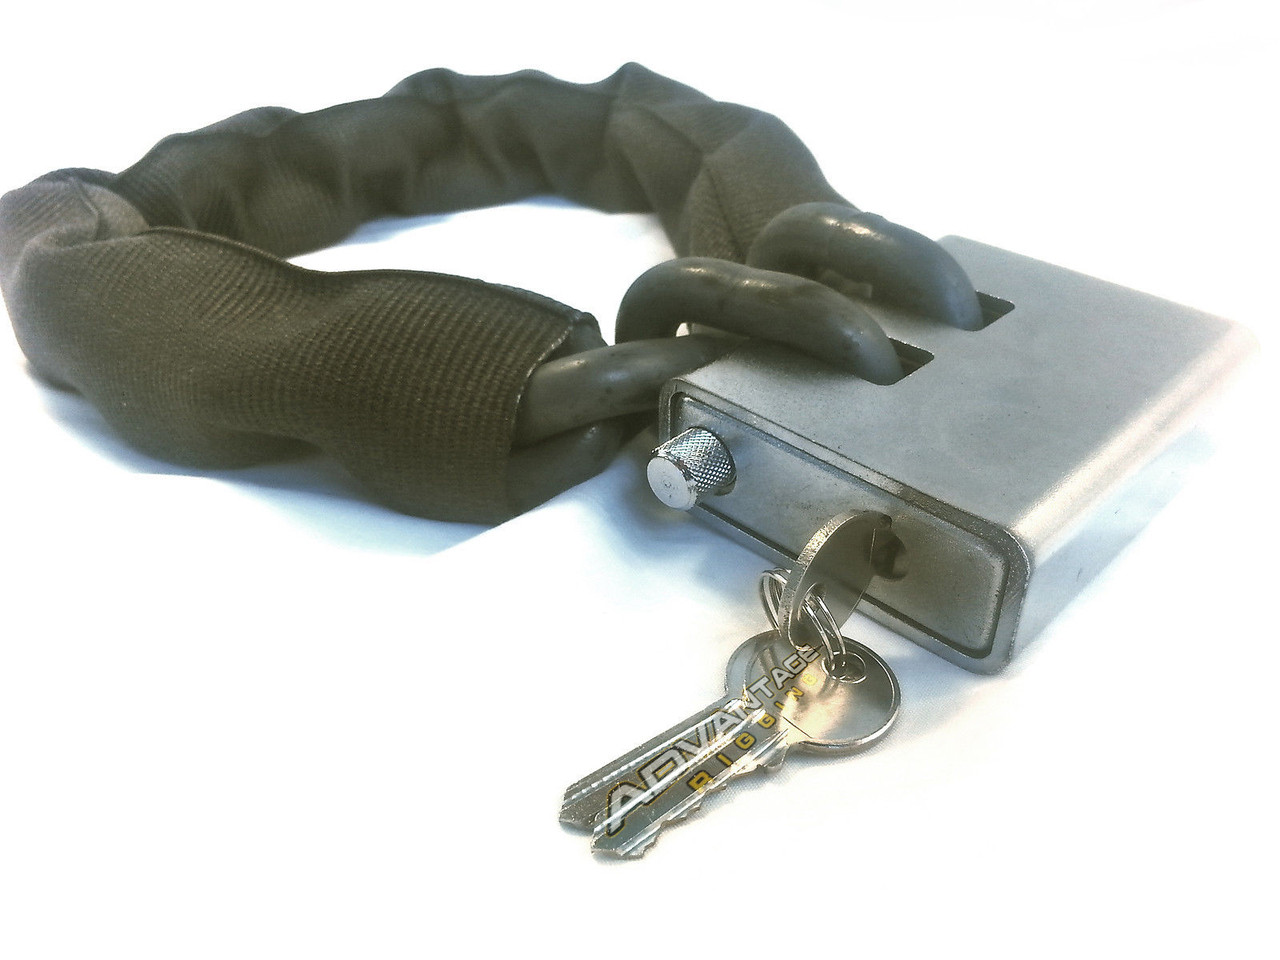 Defender Security Lock with keys and 4' chain